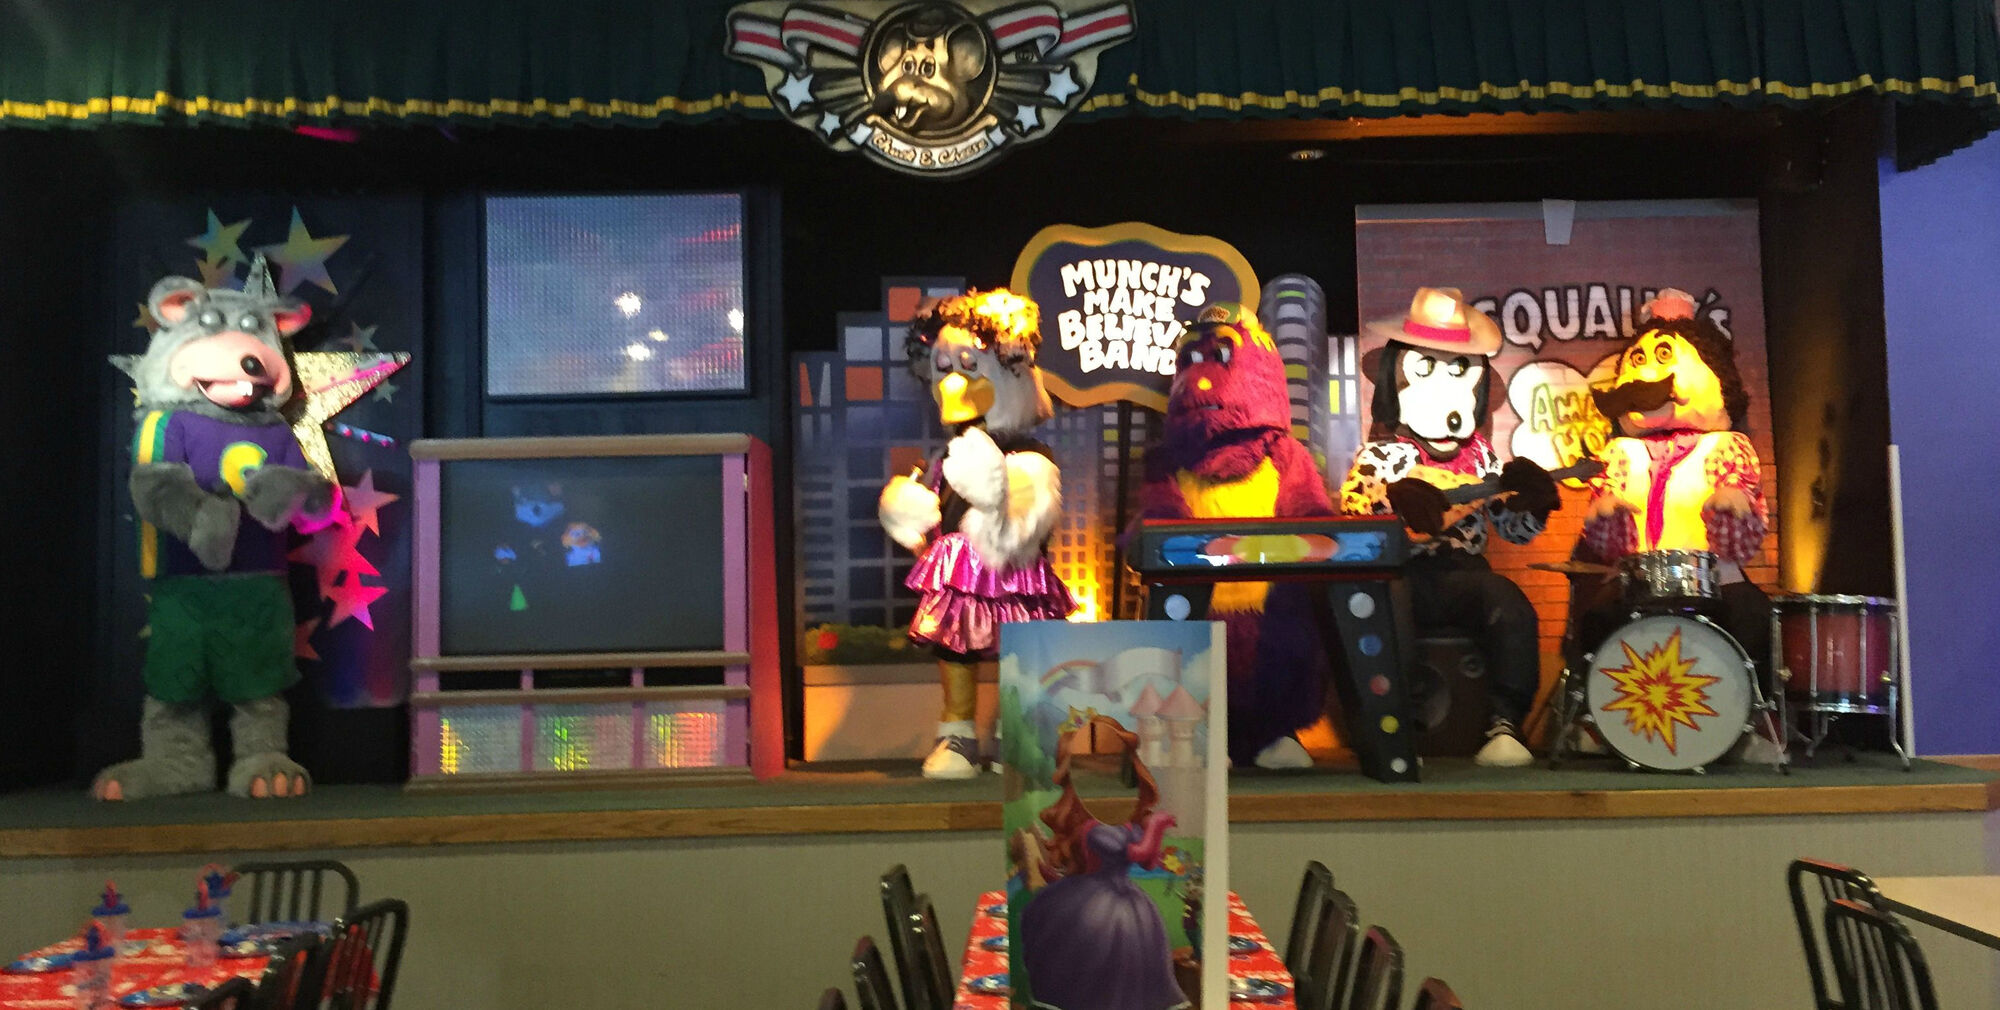 Tacoma Back Pages >> 2-Stage | ShowBiz Pizza Wiki | FANDOM powered by Wikia